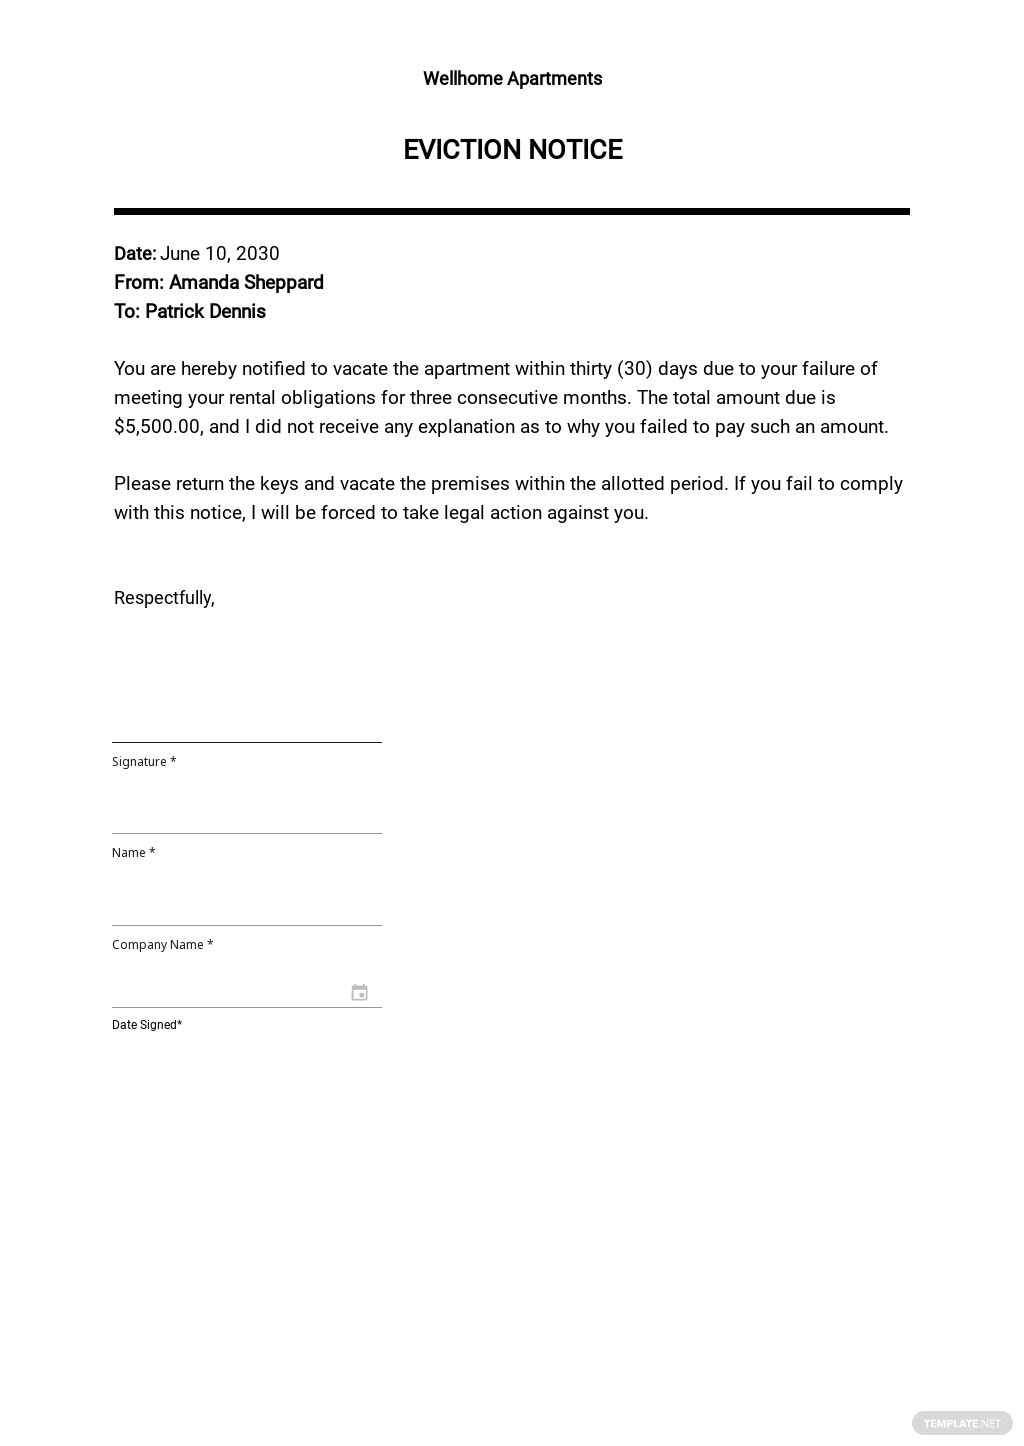 Free Eviction Notice Template.jpe